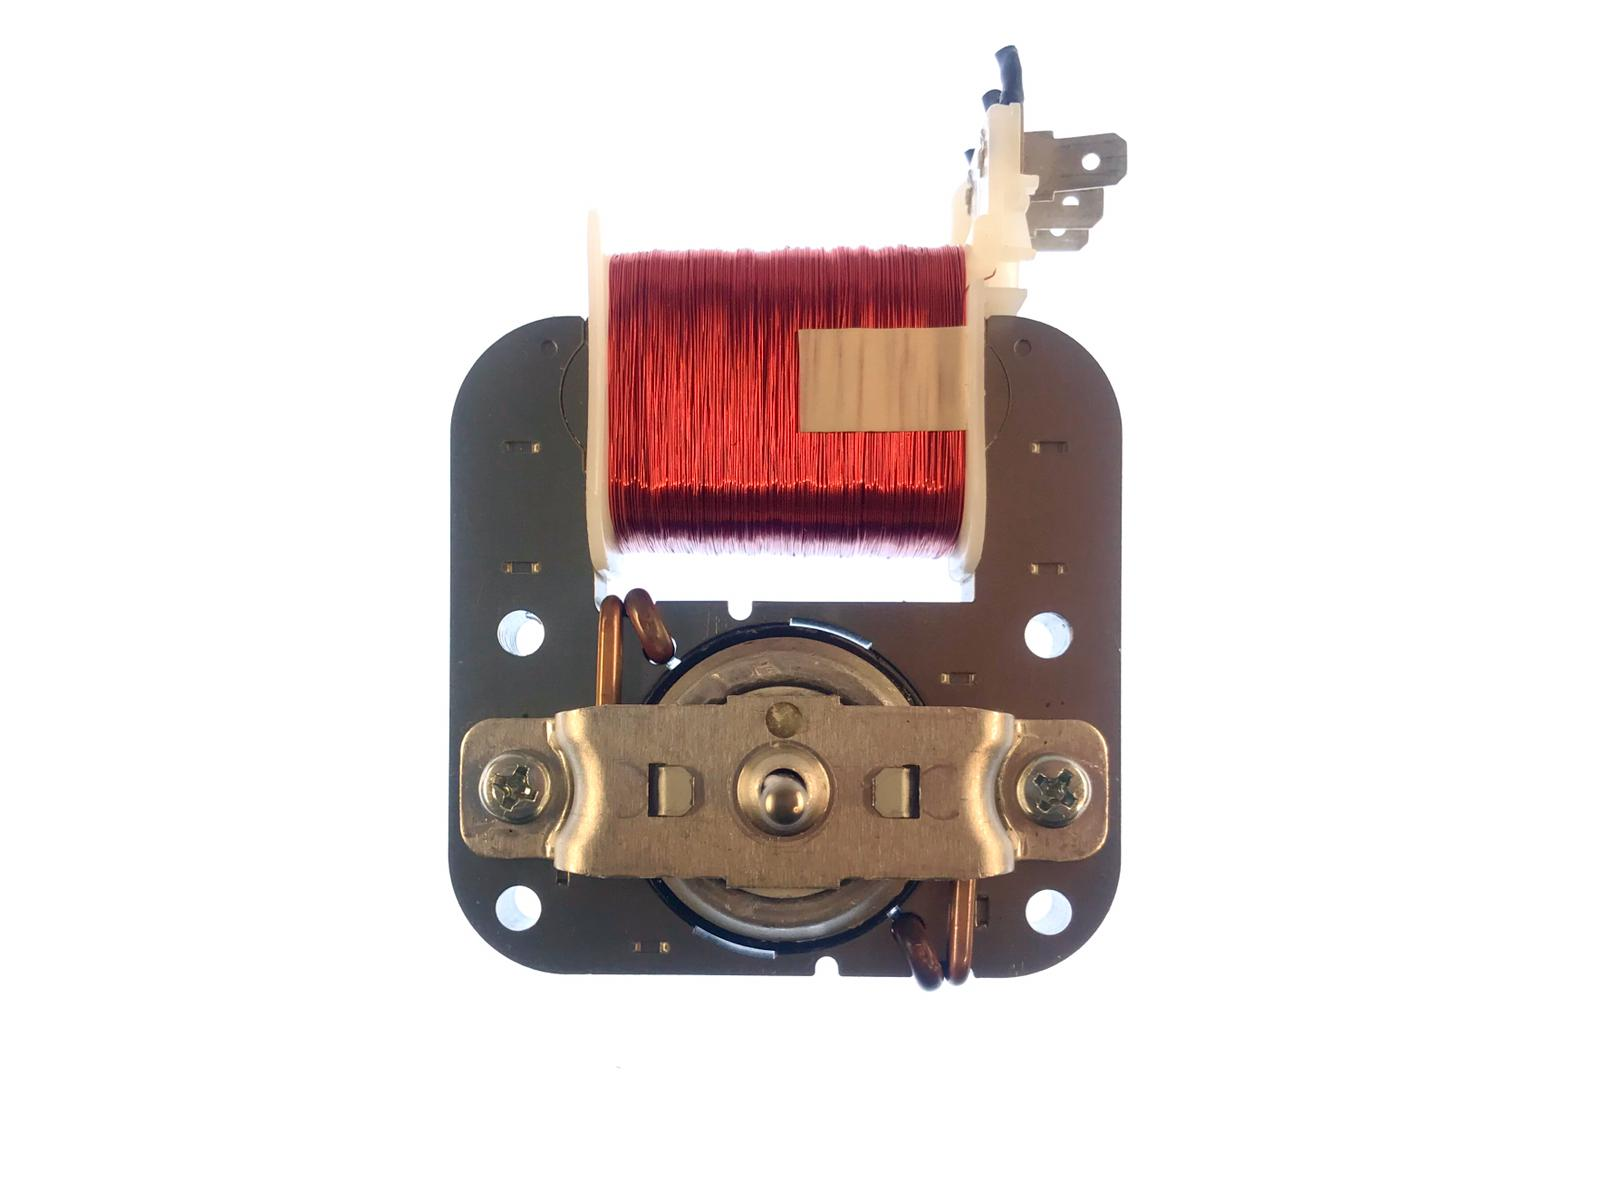 FAN Motor For Samsung MS23K3515AS Microwave Oven SMF-3RDEA1T